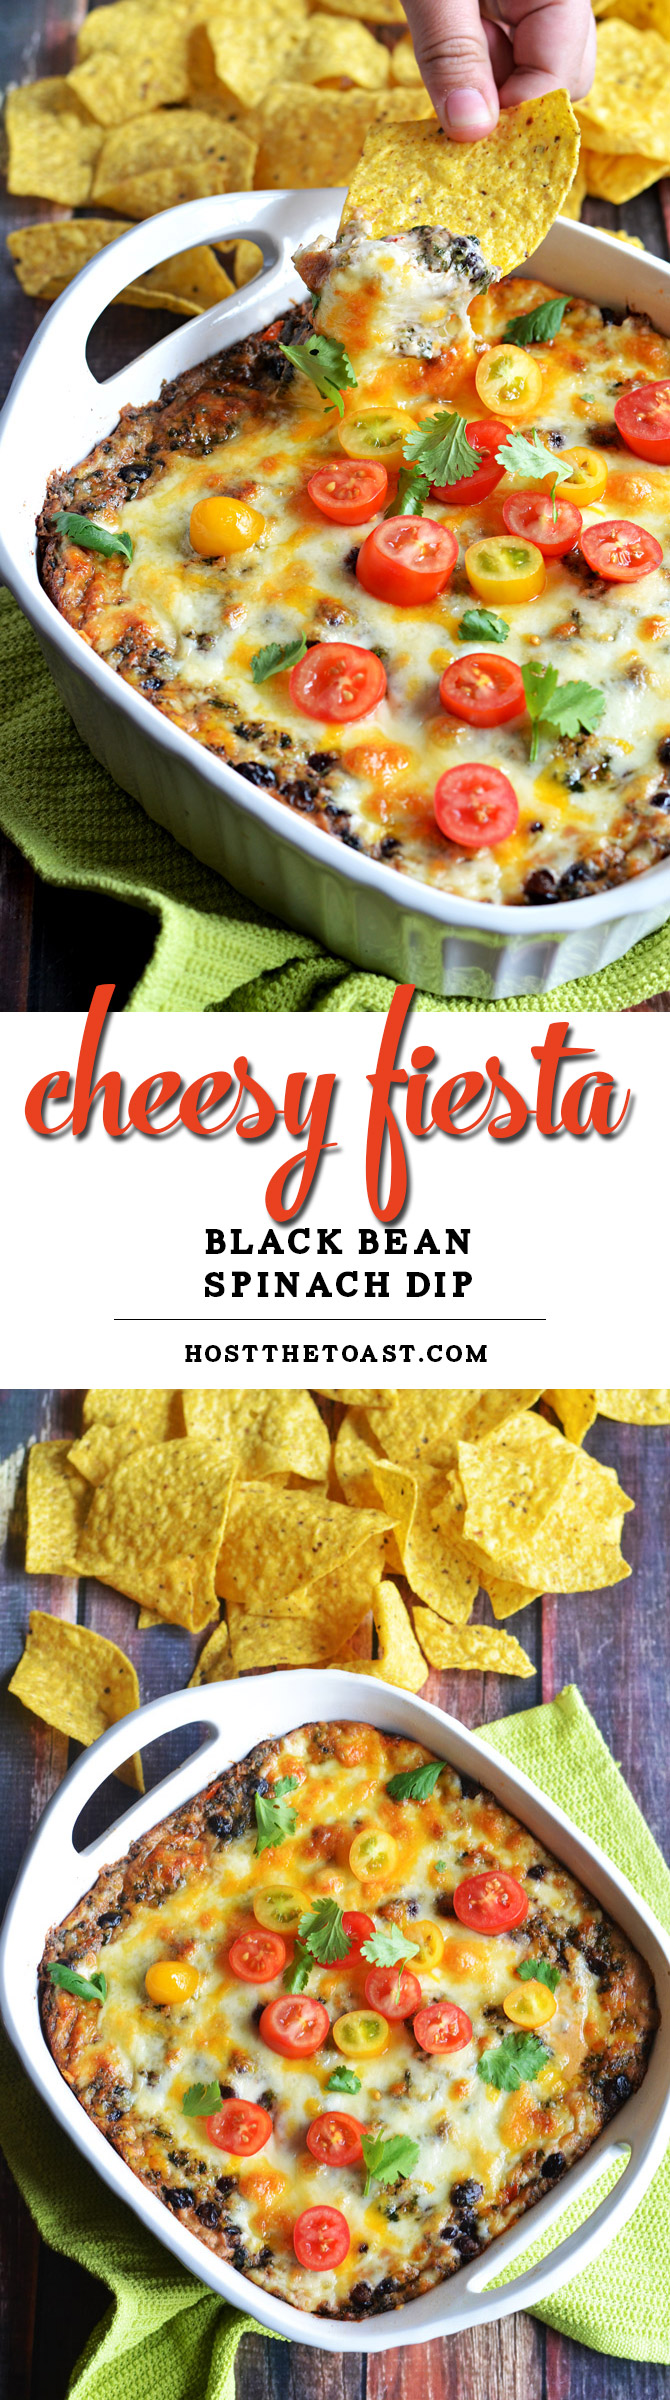 Cheesy Fiesta Black Bean Spinach Dip. This dip is bound to be a new favorite, and it's easy to make! Bake it for Cinco de Mayo or your next party. It's ADDICTIVE. | hostthetoat.com